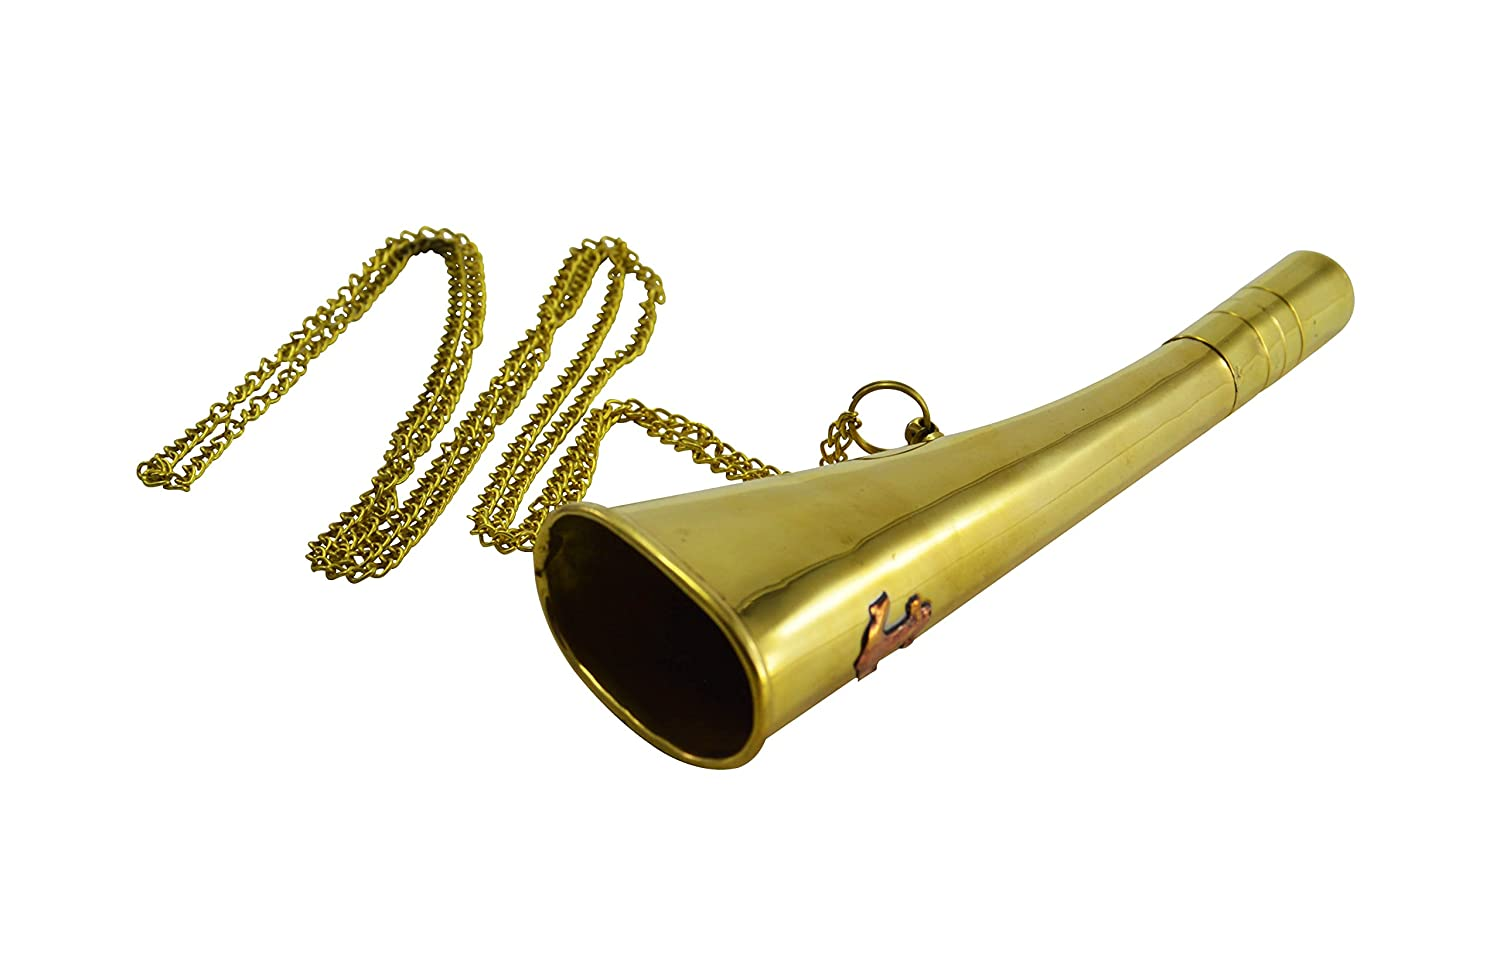 6 Brass Military Anchor Symbolized Bugle Horn Summer Camp Boy Girl Scout Signalling Bugle Horn with Sling Chain Dorpmarket QDE5125